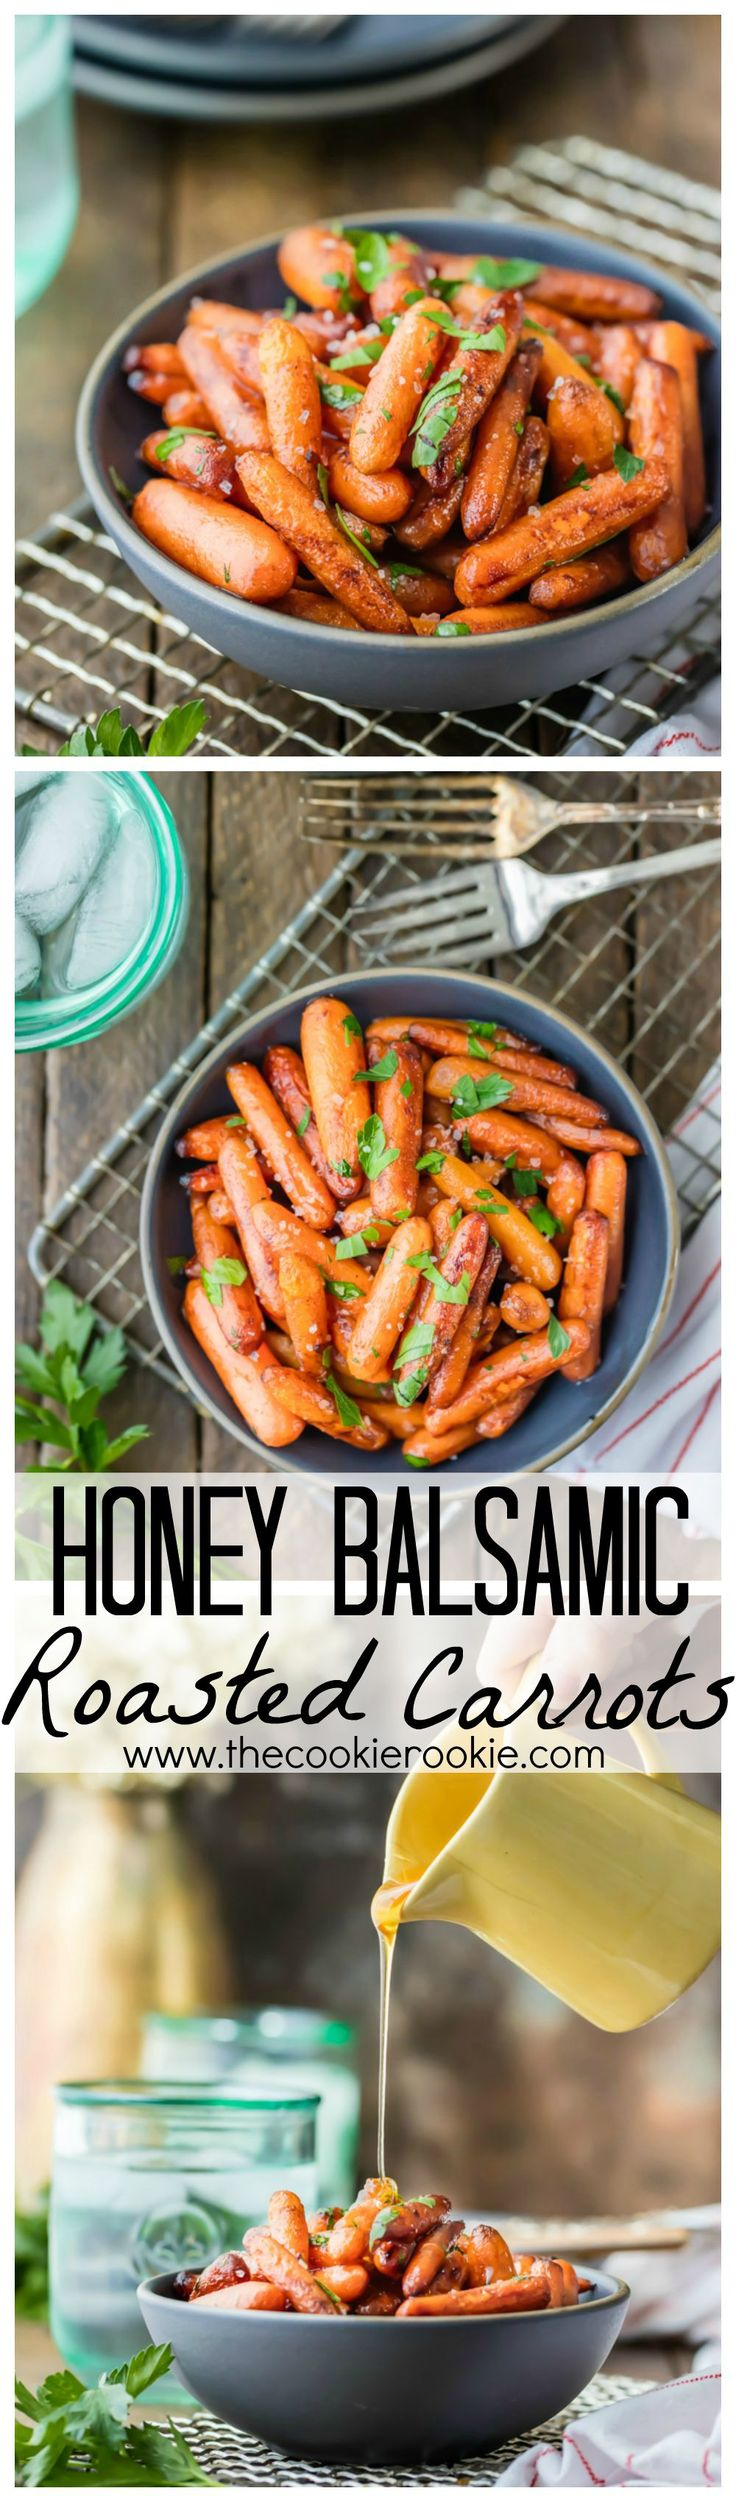 Honey Balsamic Roasted Carrots | The Cookie Rookie | Bloglovin'